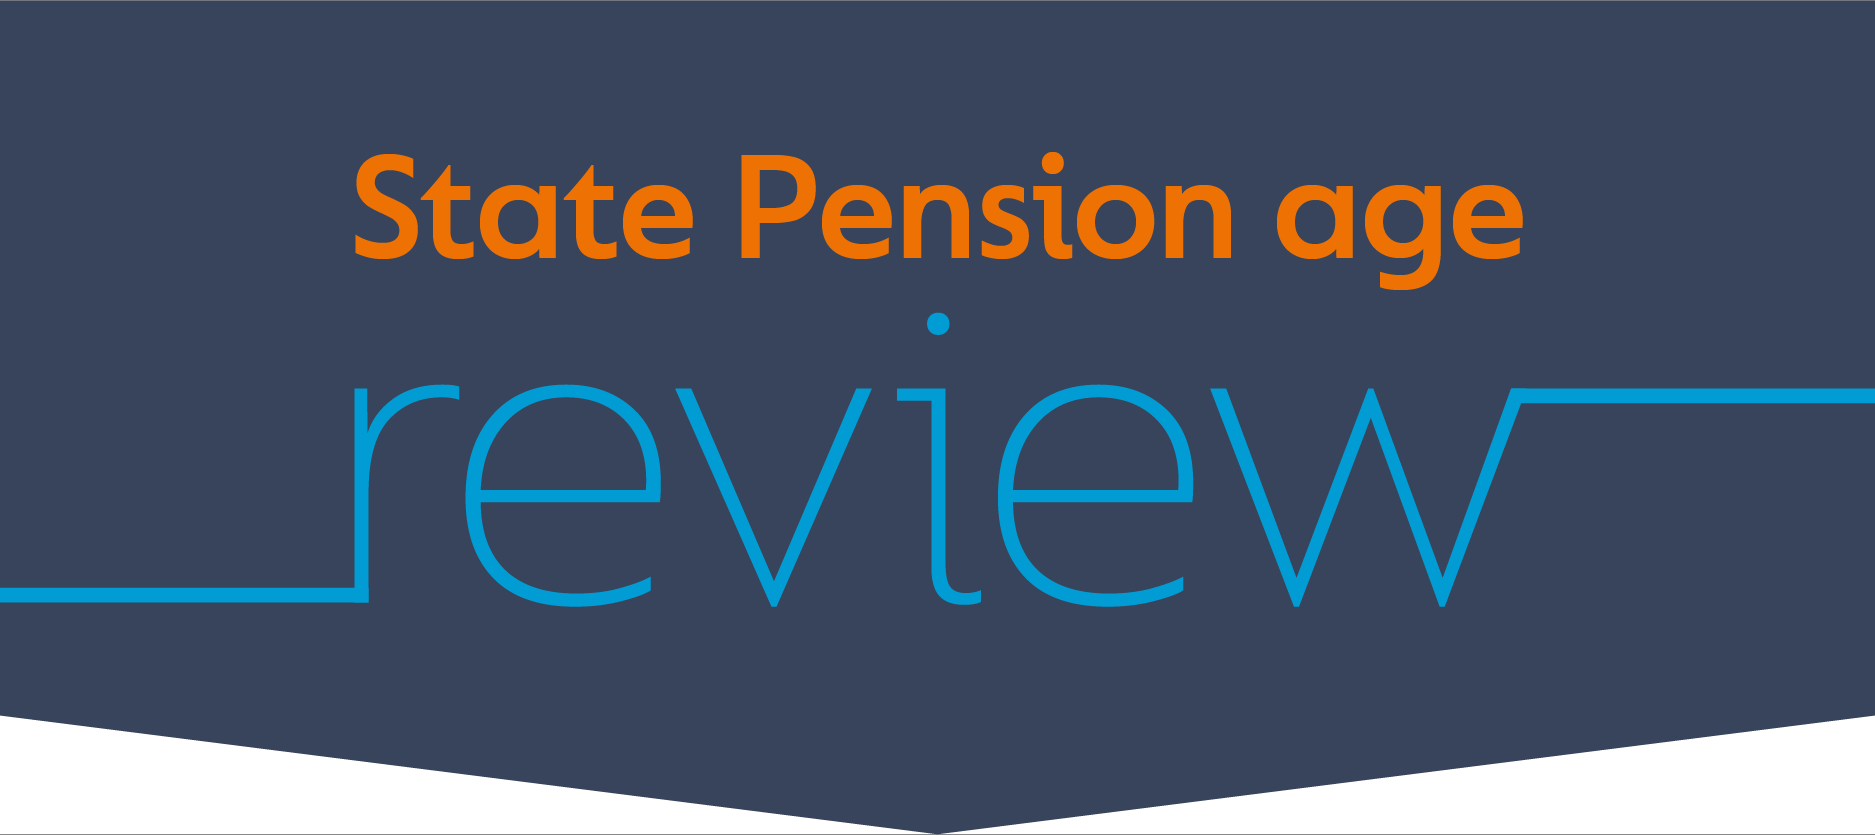 4 things you need to know about the State Pension age review